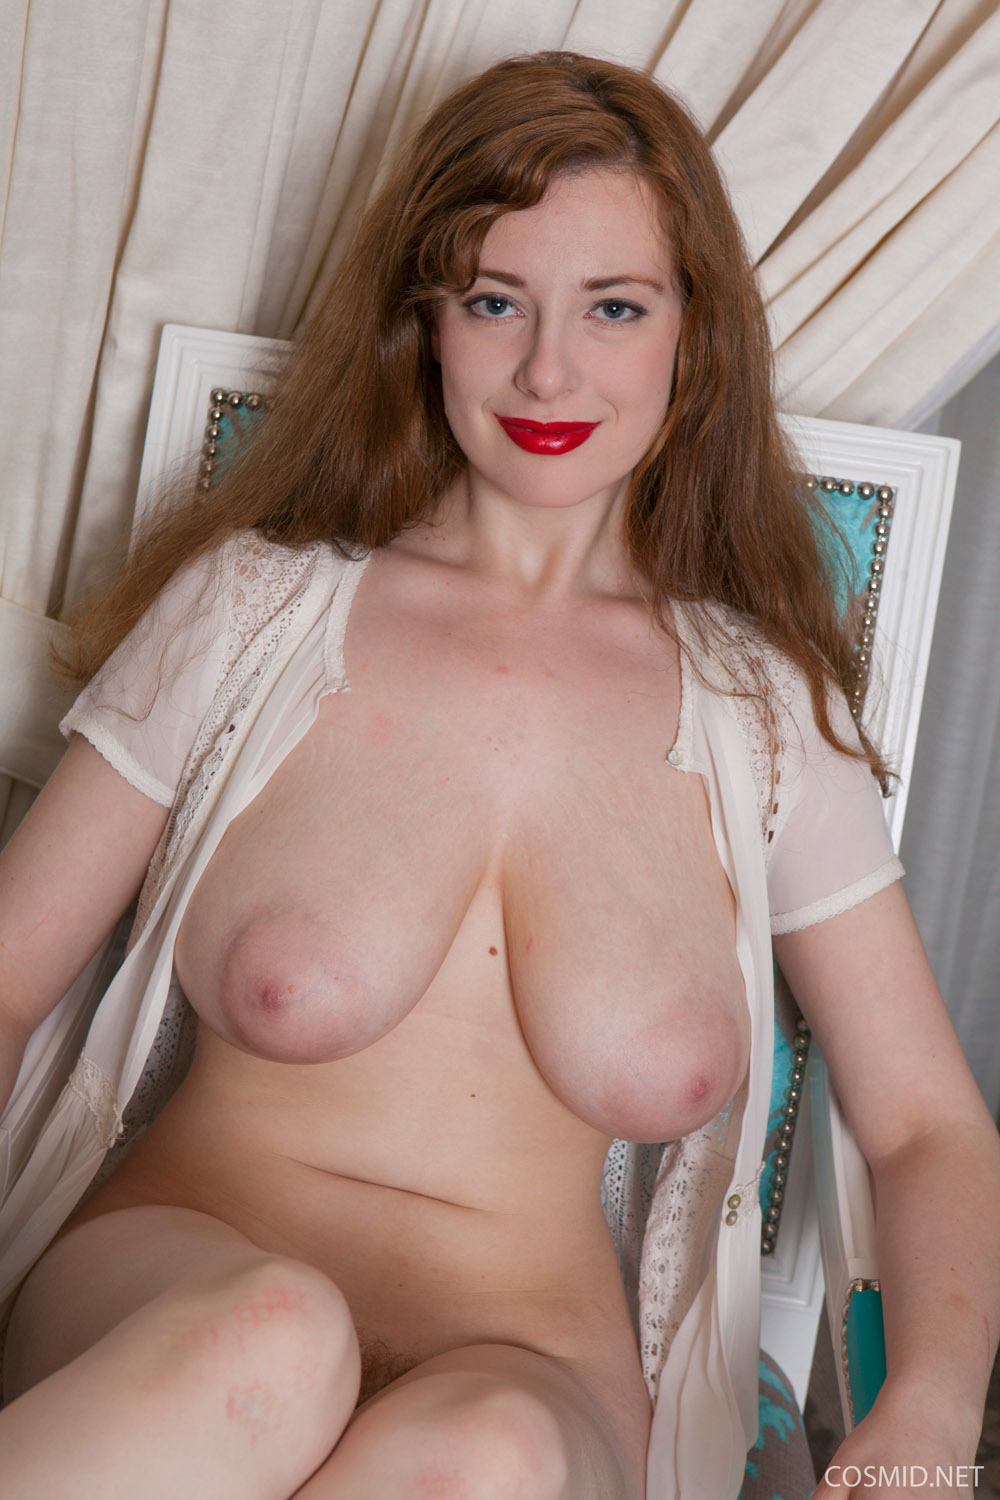 Remarkable, Small girls big natural tits nude